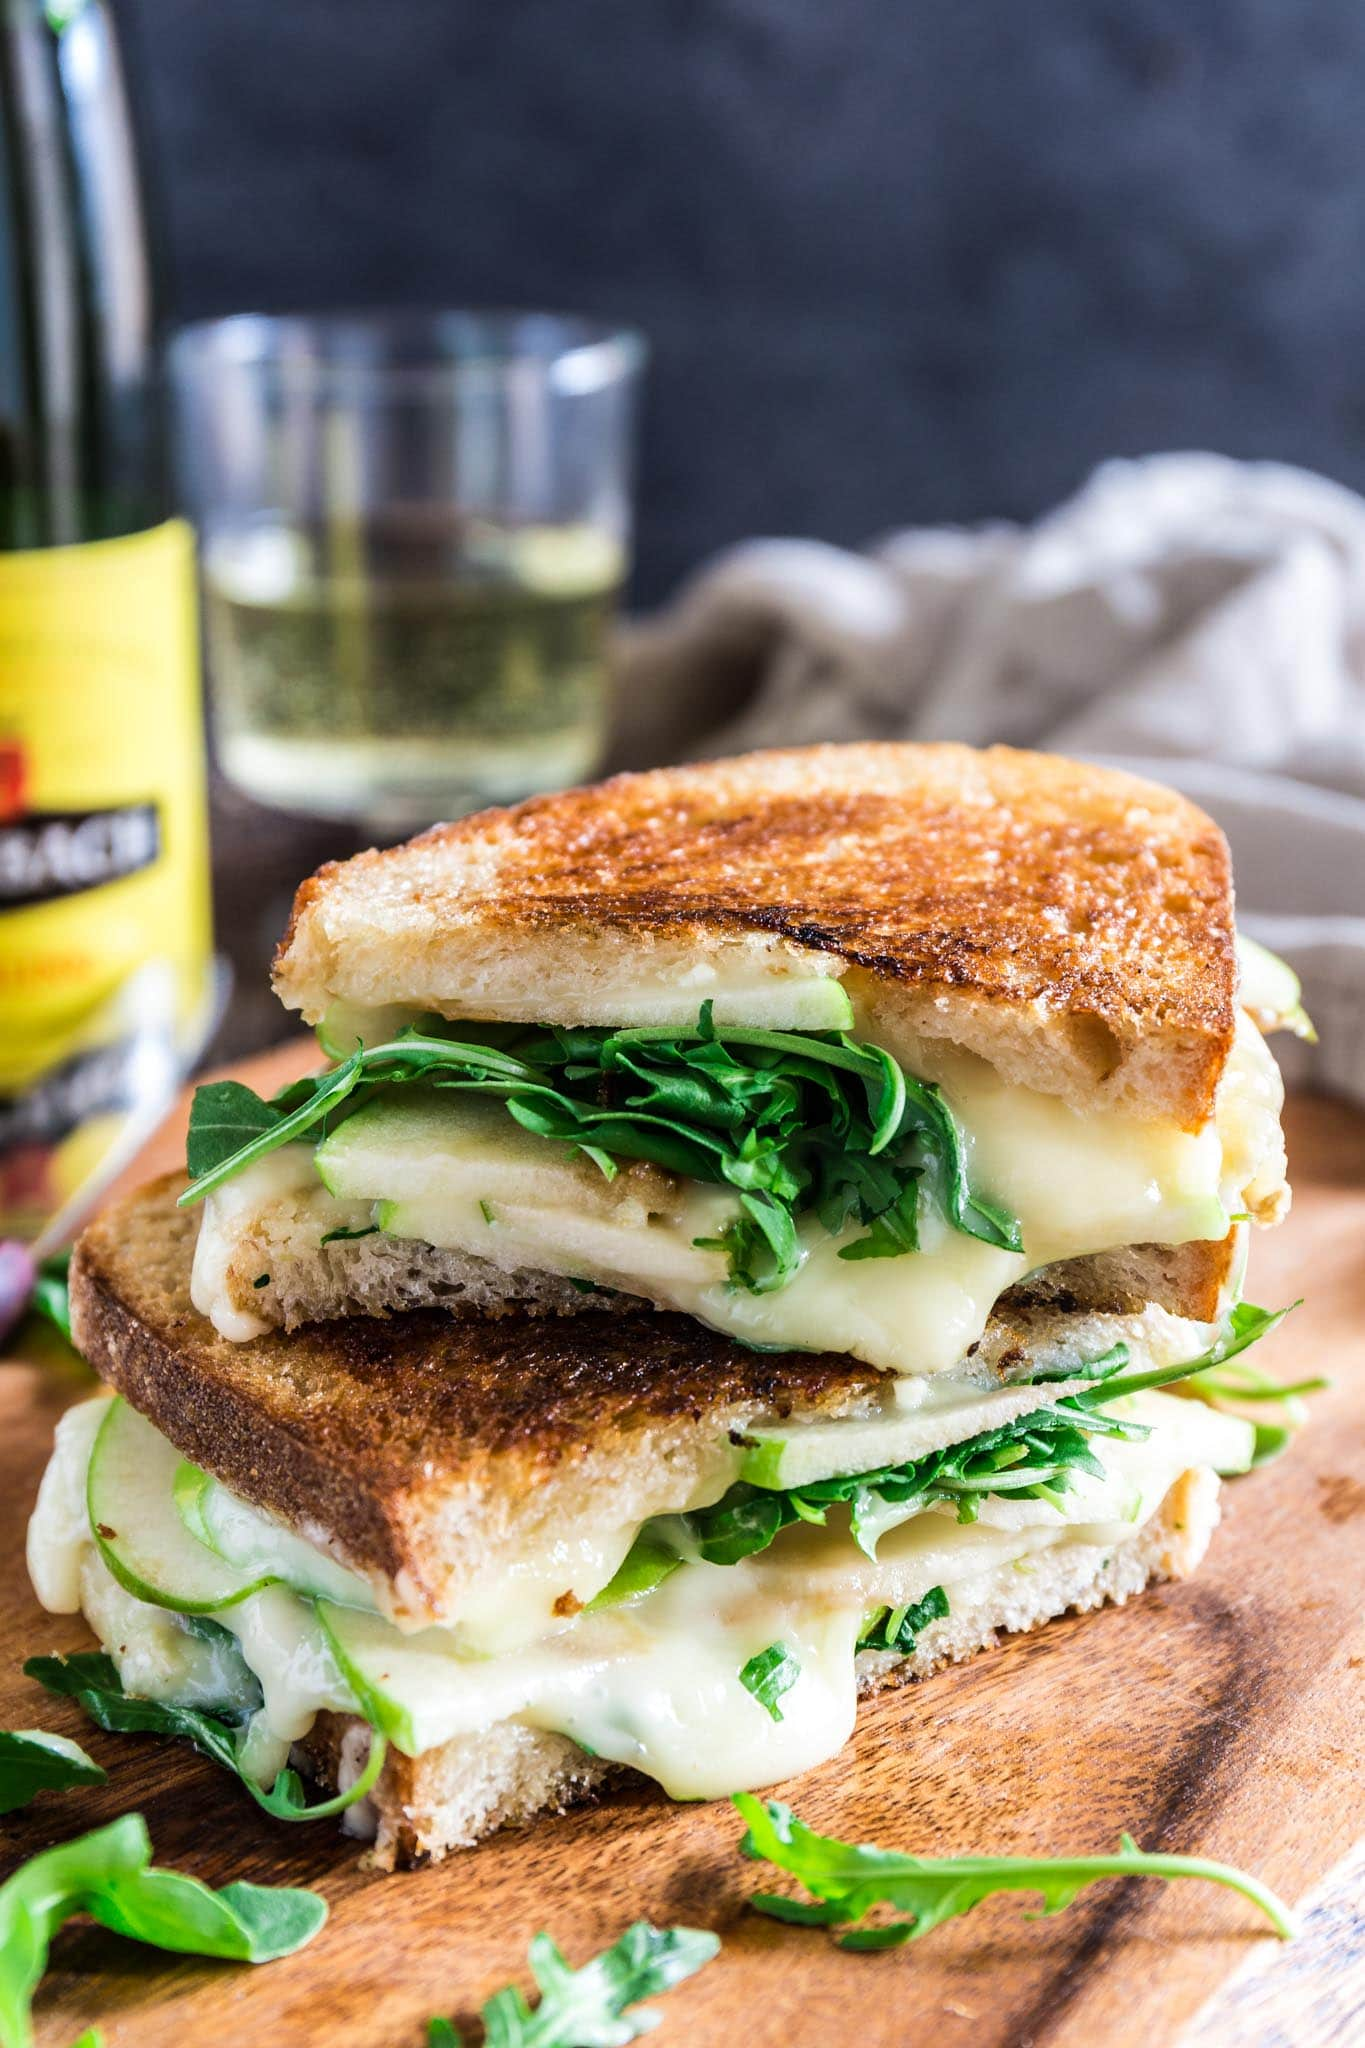 Apple, Arugula and Brie Panini with Honey Butter | www.oliviascuisine.com | Be ready to be wowed! One bite of this French inspired Apple, Arugula and Brie Panini with Honey Butter and you're on a one way trip to France. No need for a return ticket as I'm 100% sure you will never wanna go back! (Recipe by @oliviascuisine.)